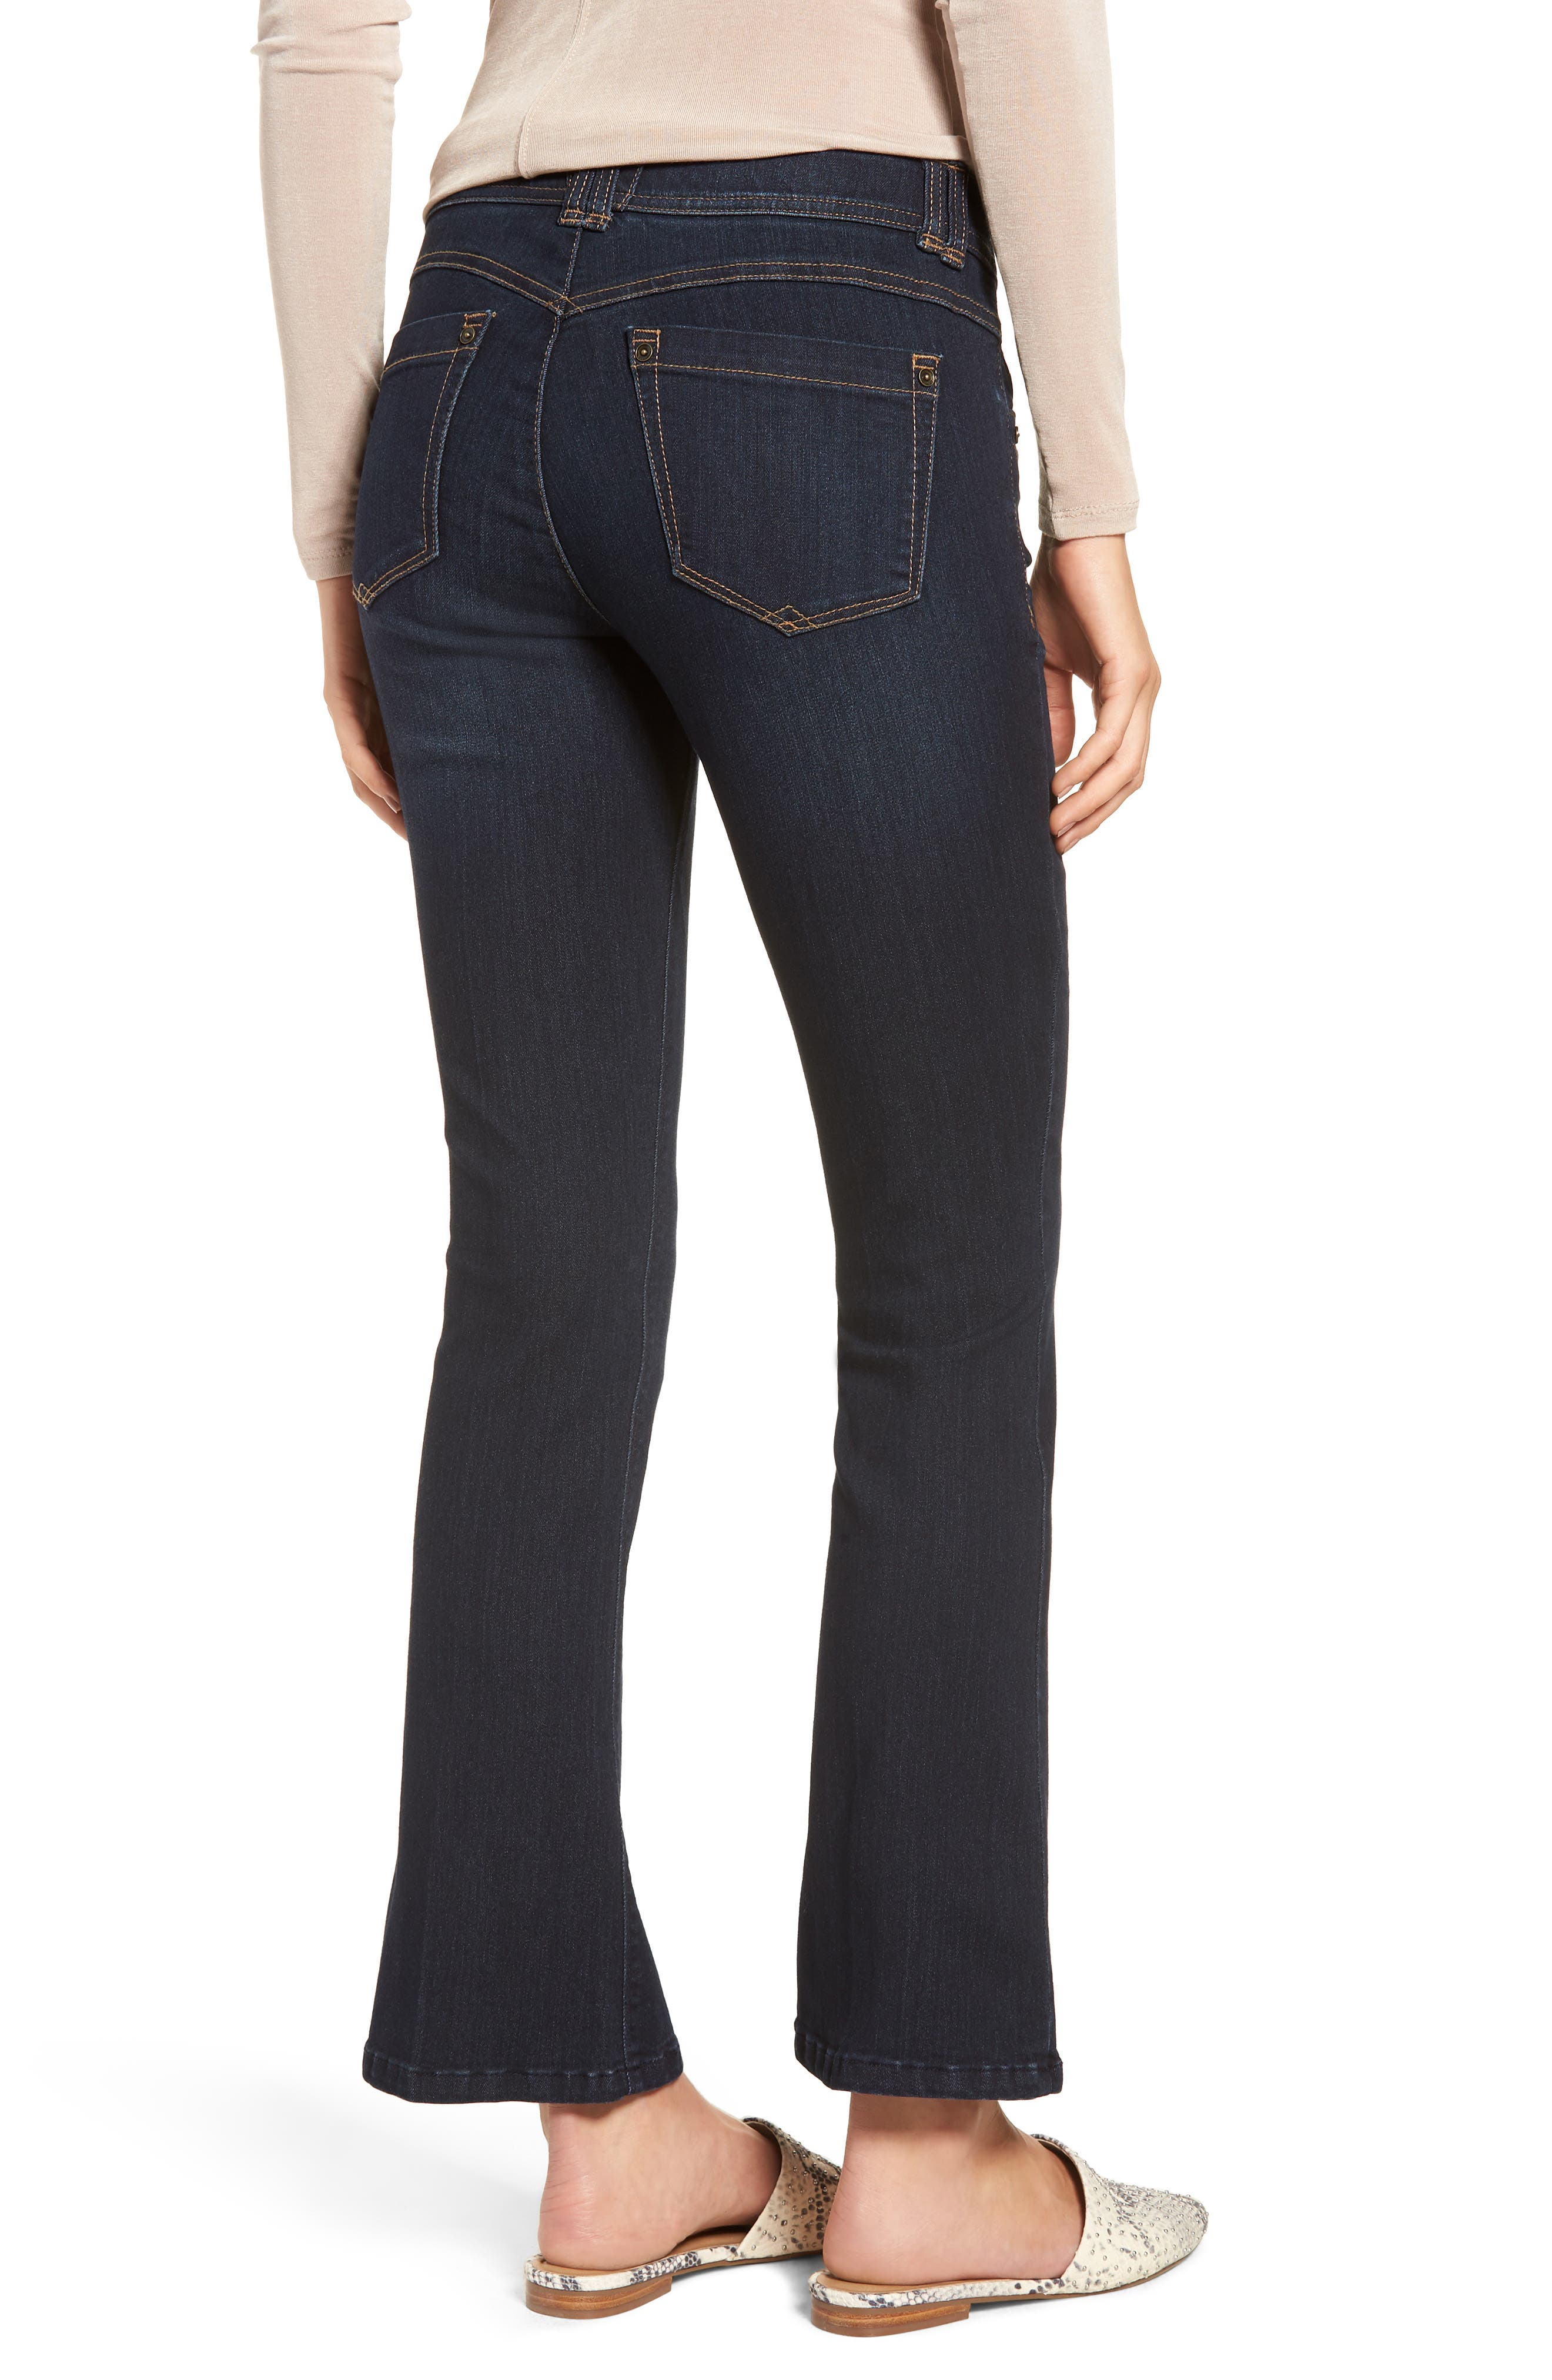 Ab-solution Itty Bitty Bootcut Jeans,                             Alternate thumbnail 2, color,                             In-Indigo